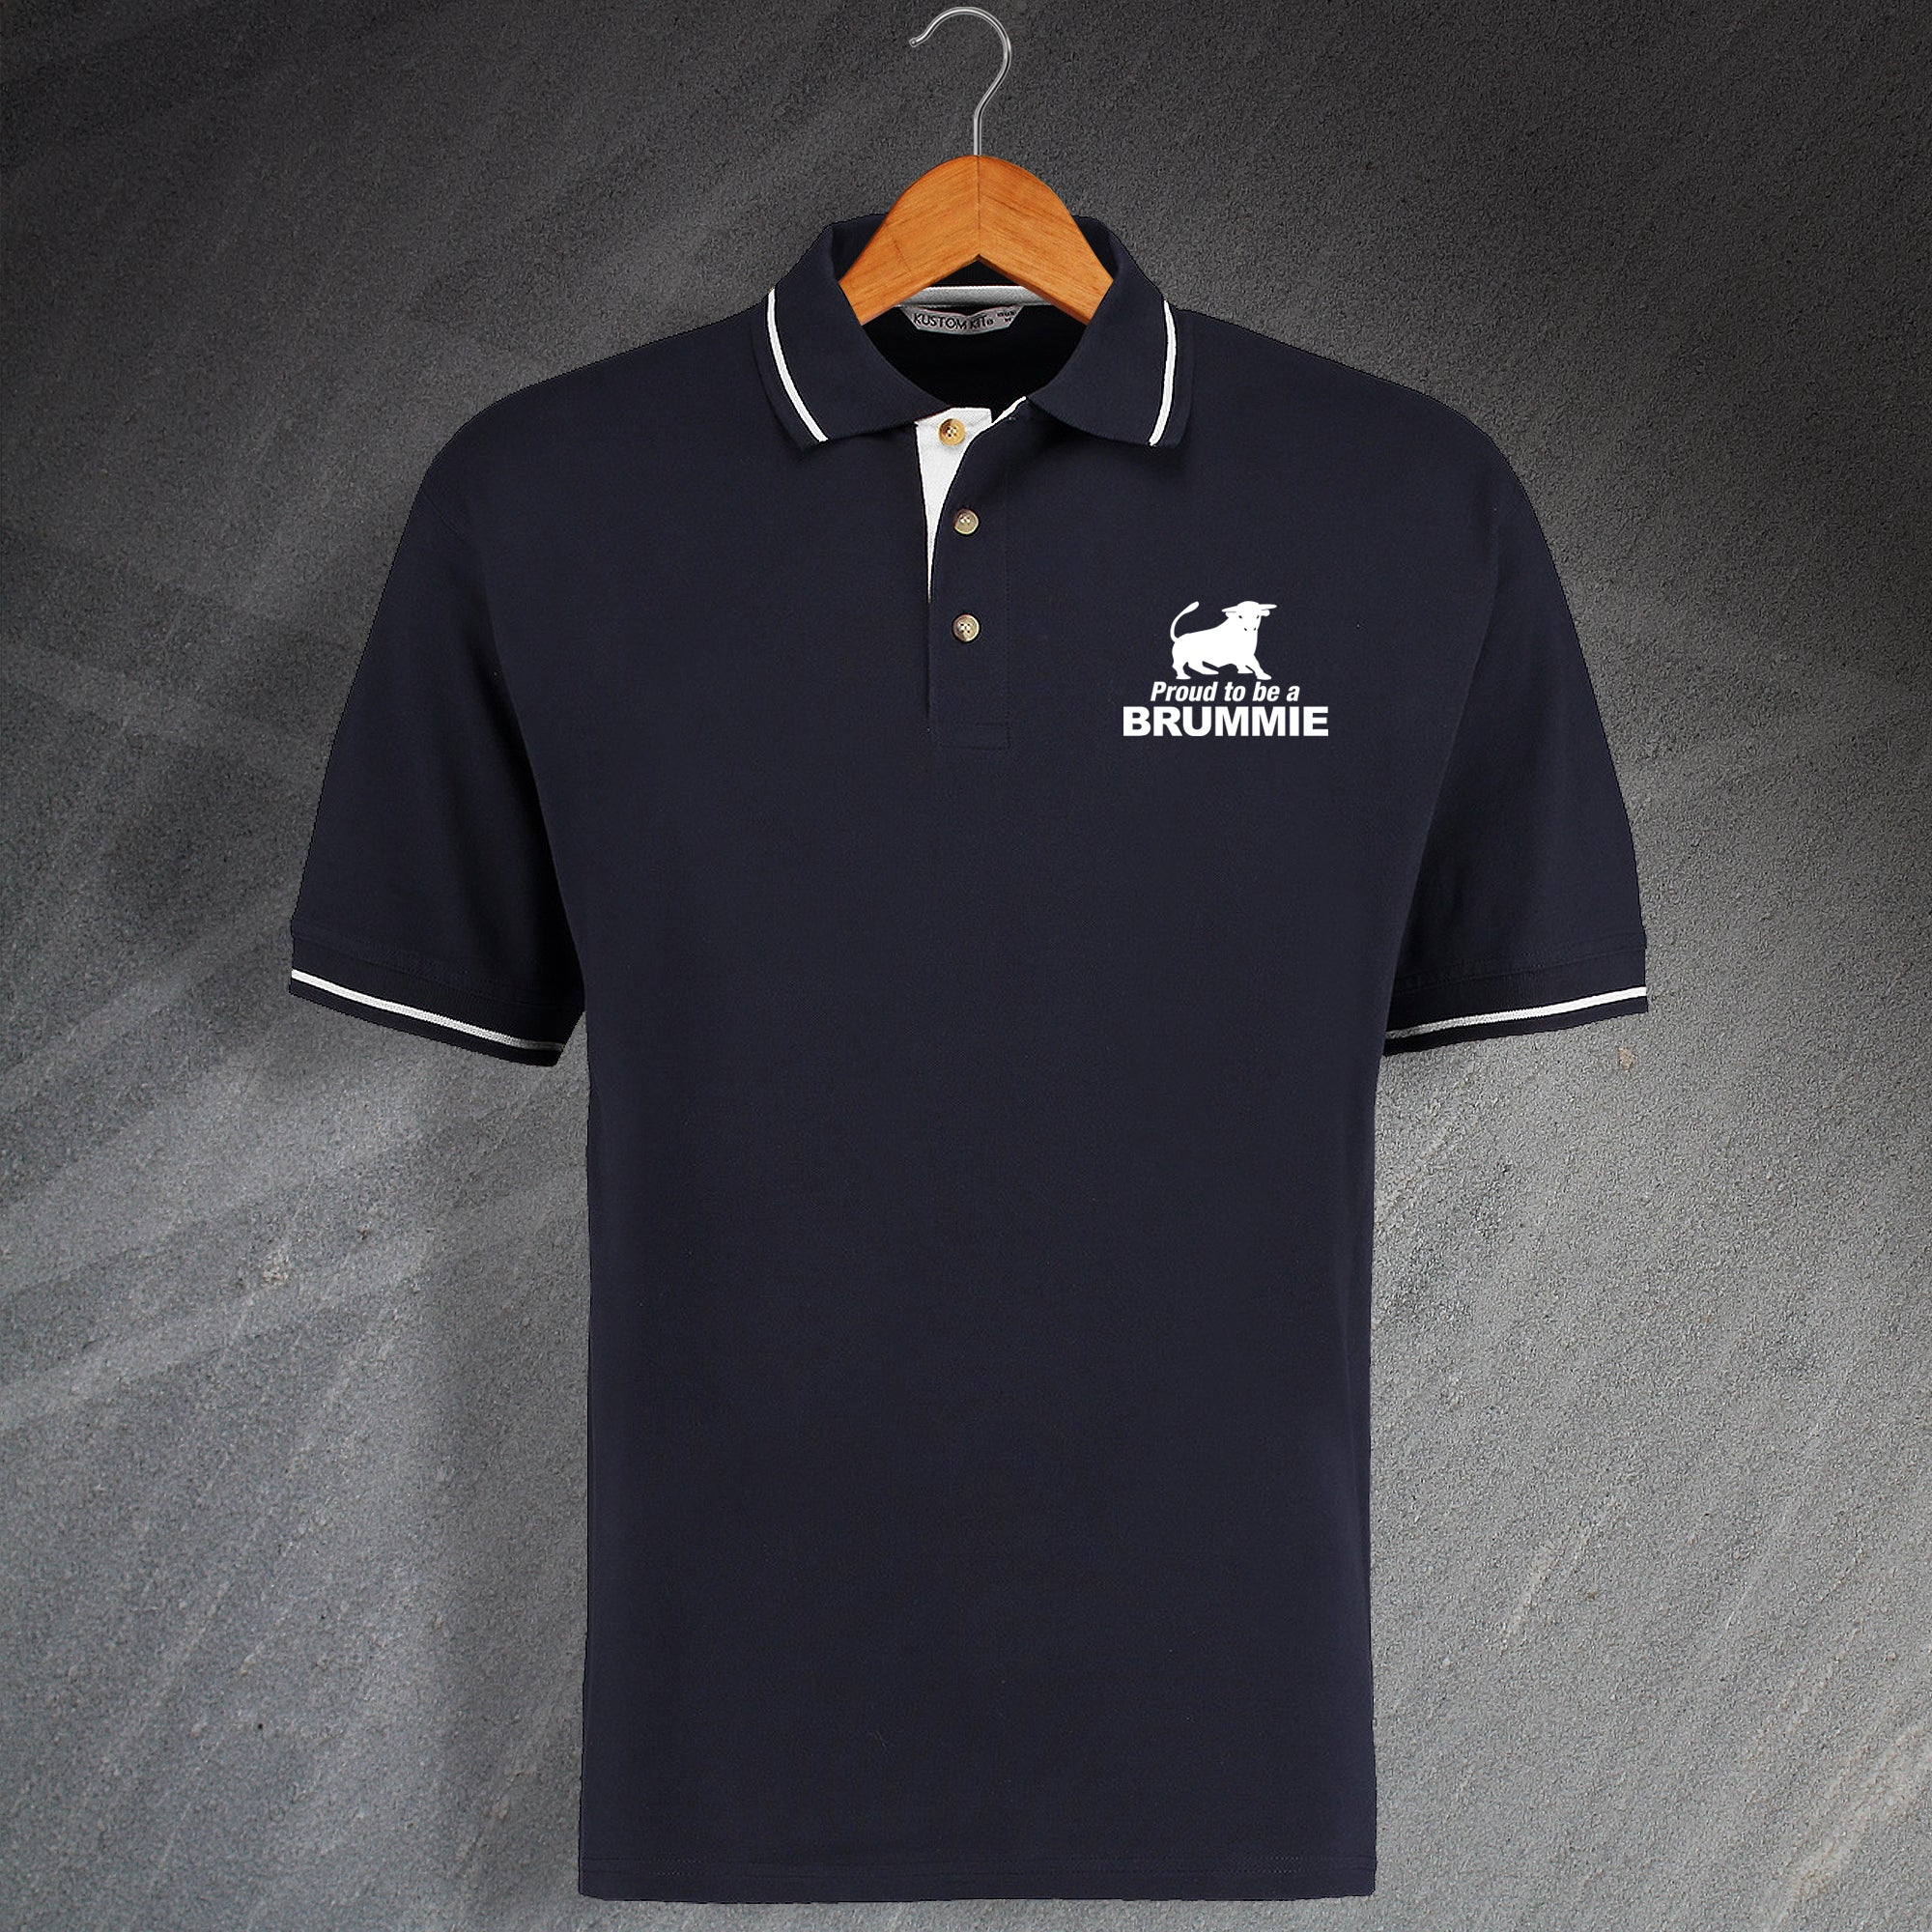 Embroidered Polo Shirts Birmingham Uk Chad Crowley Productions